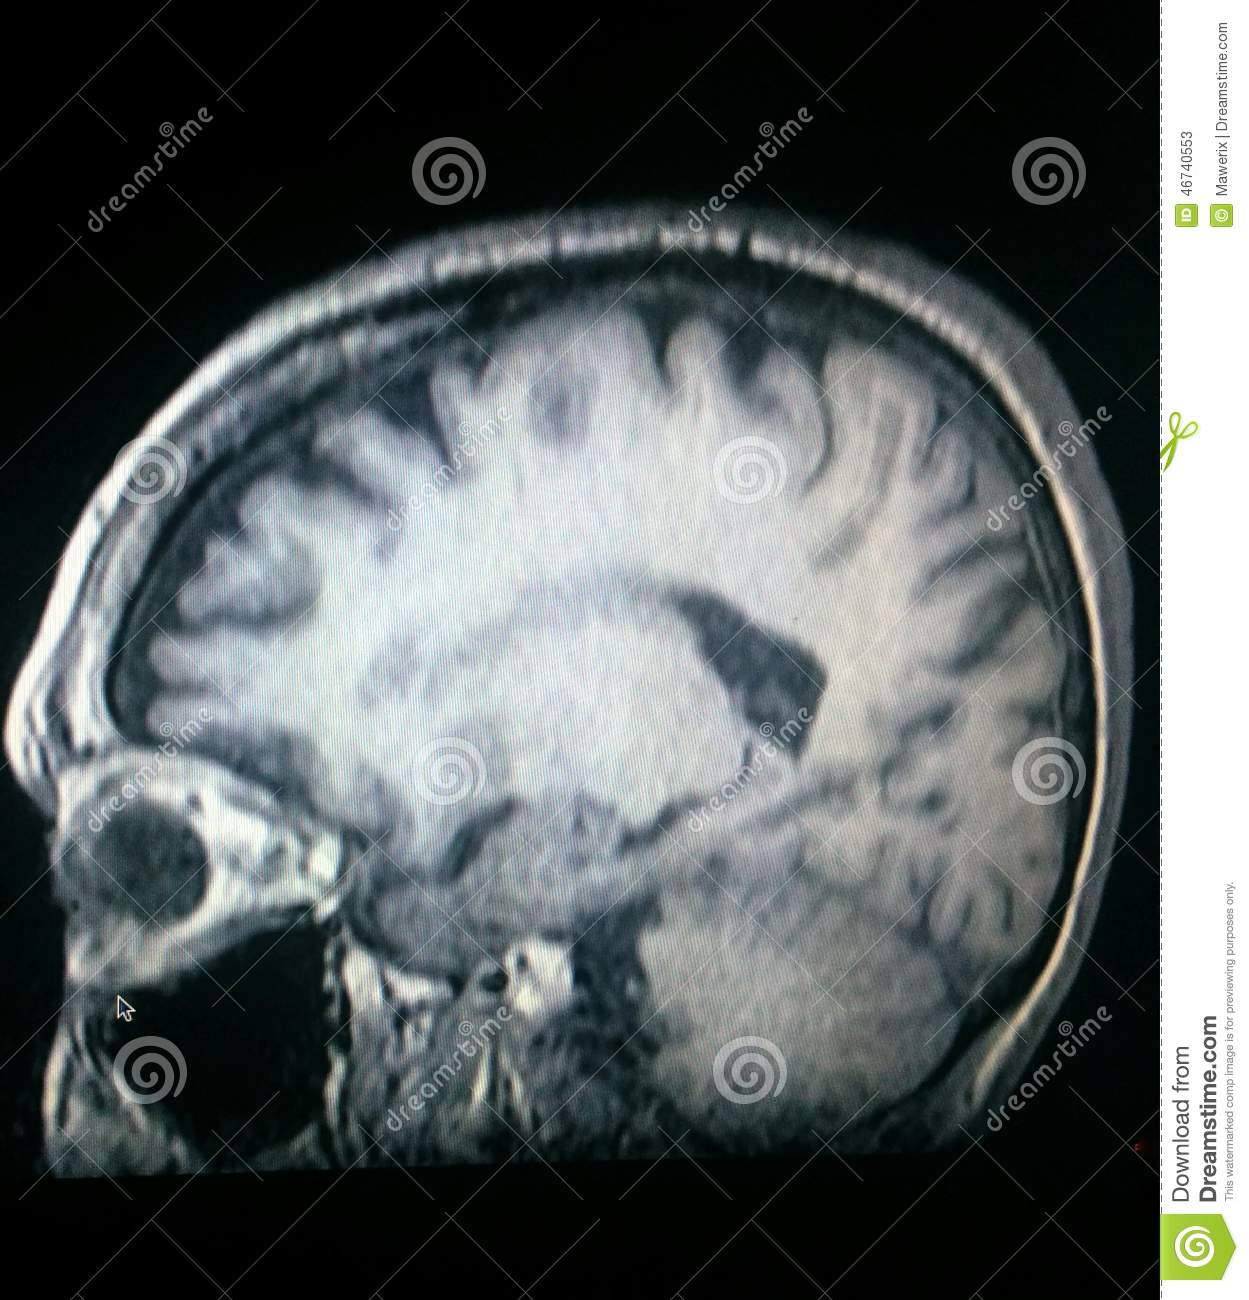 Amygdala Stock Photos - Royalty Free Images - Dreamstime